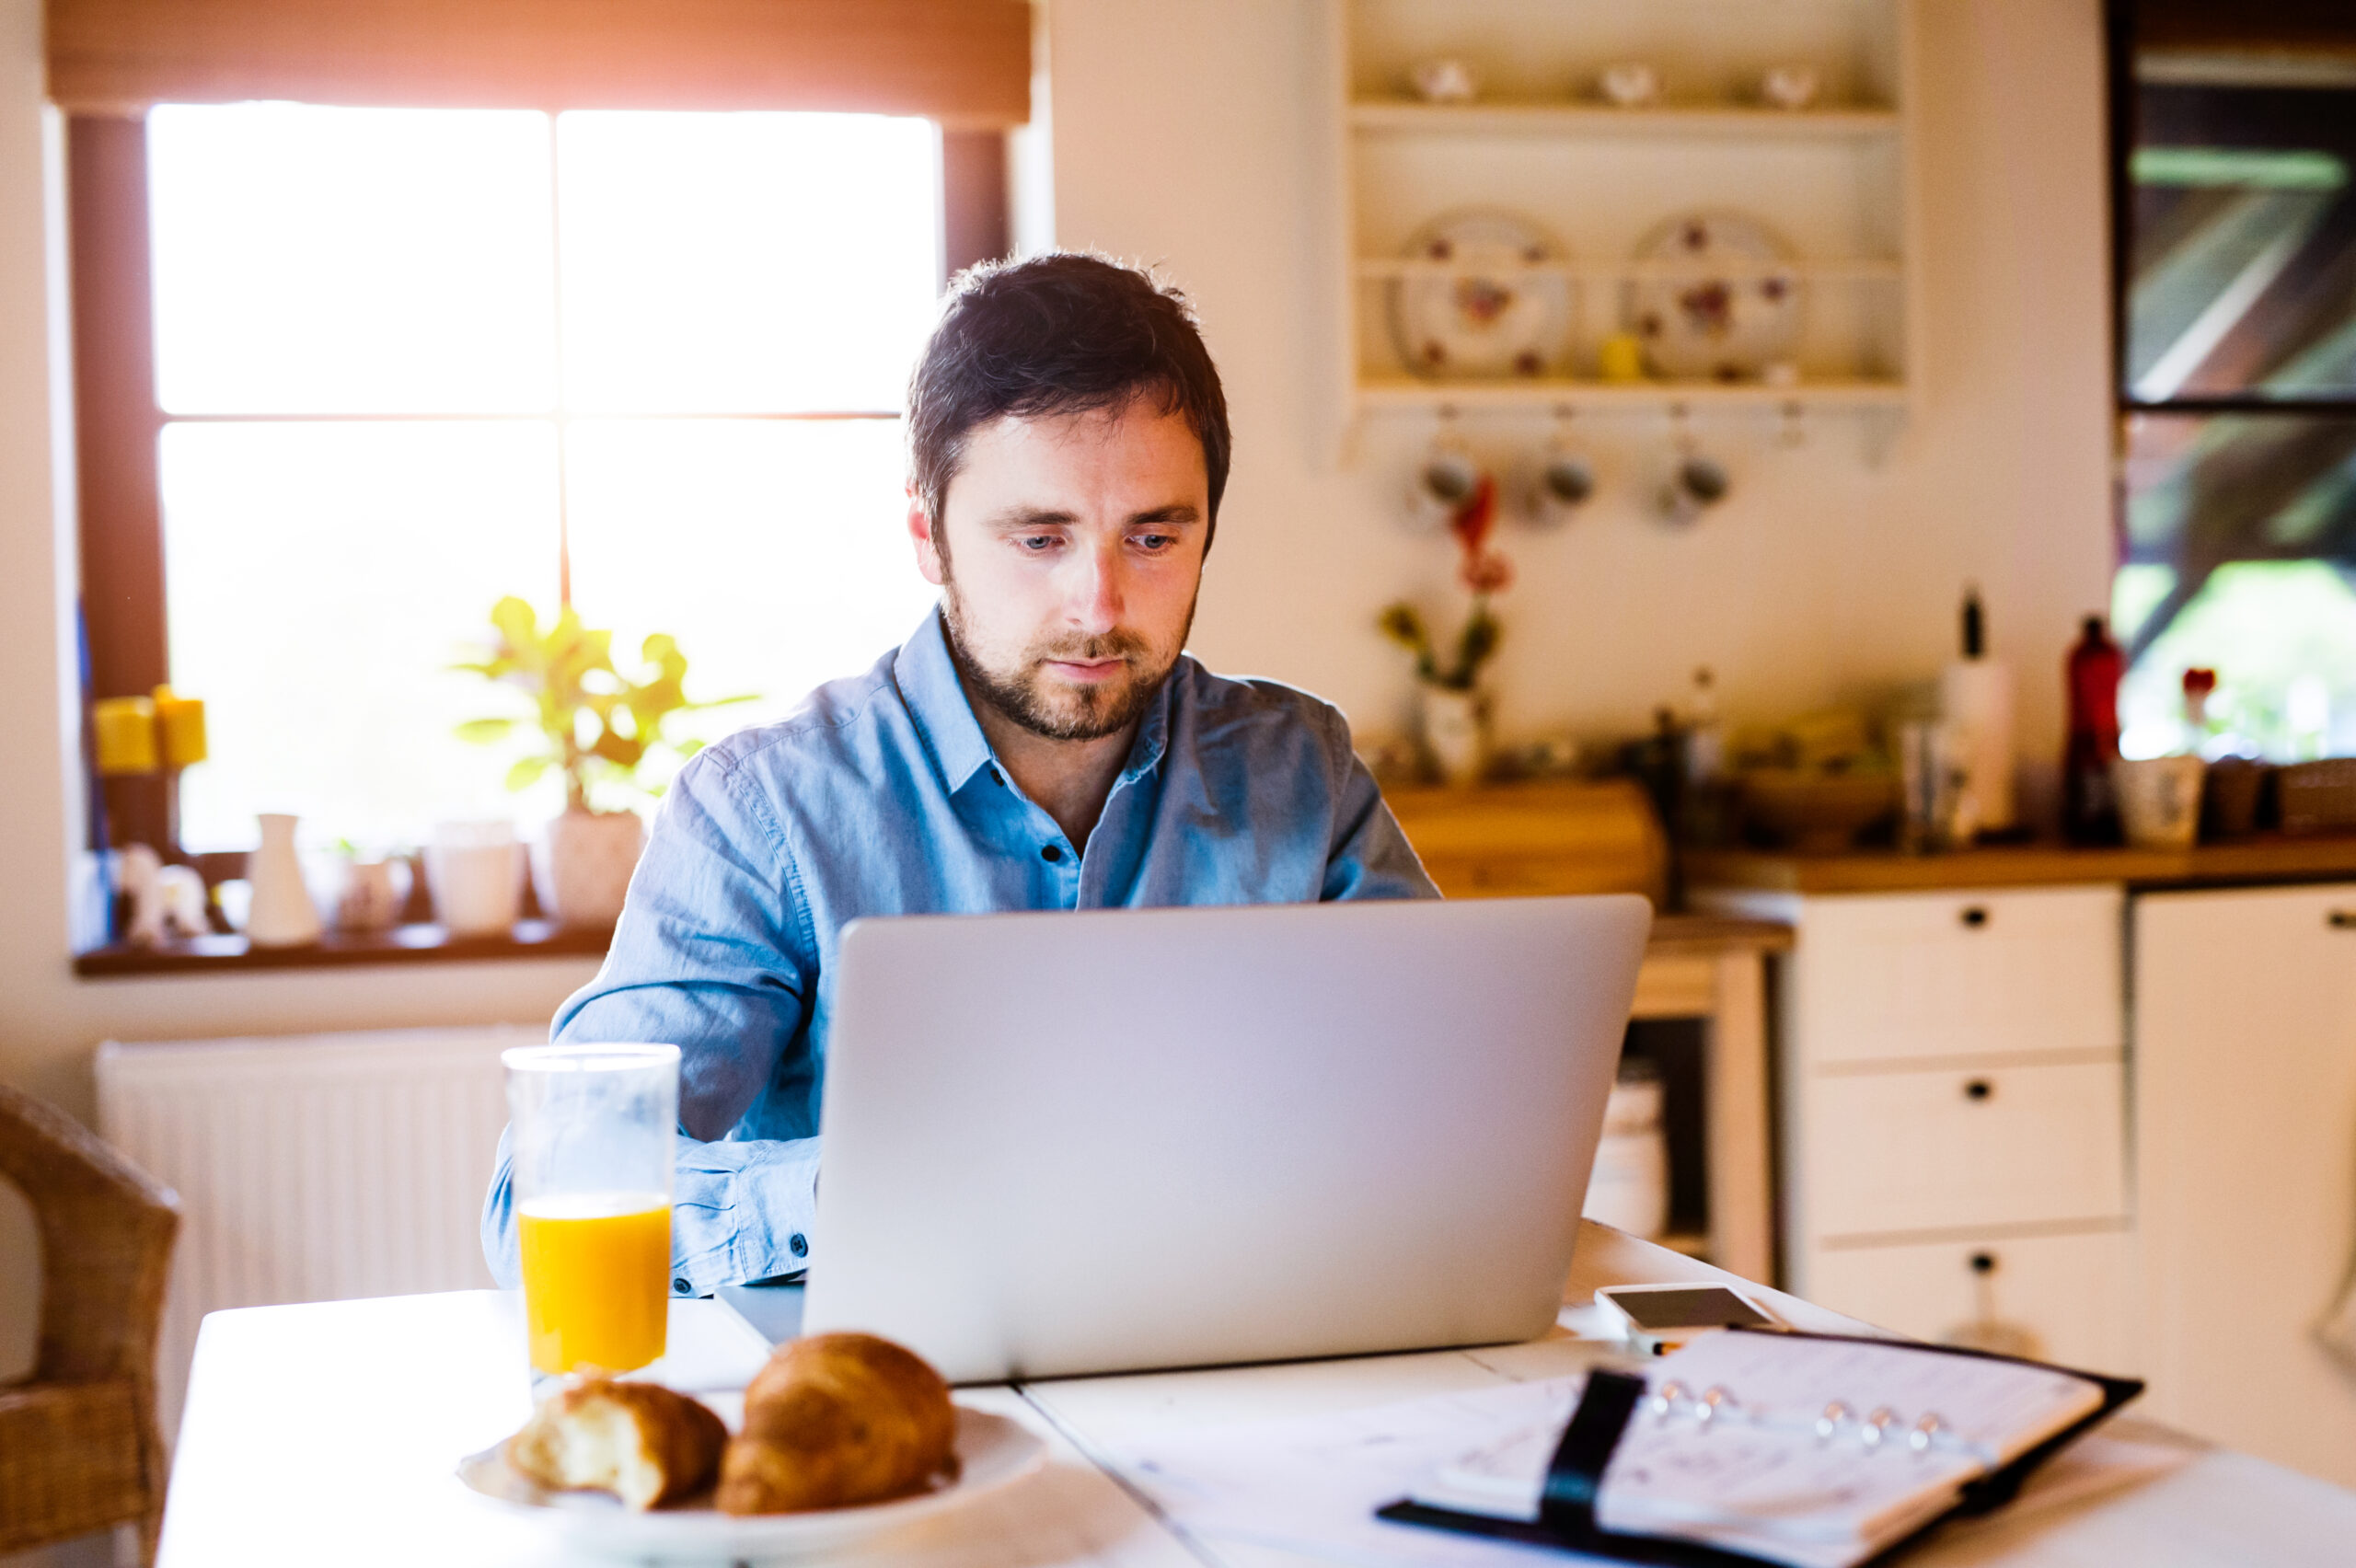 Man sitting at desk working from home with a leased laptop laptop